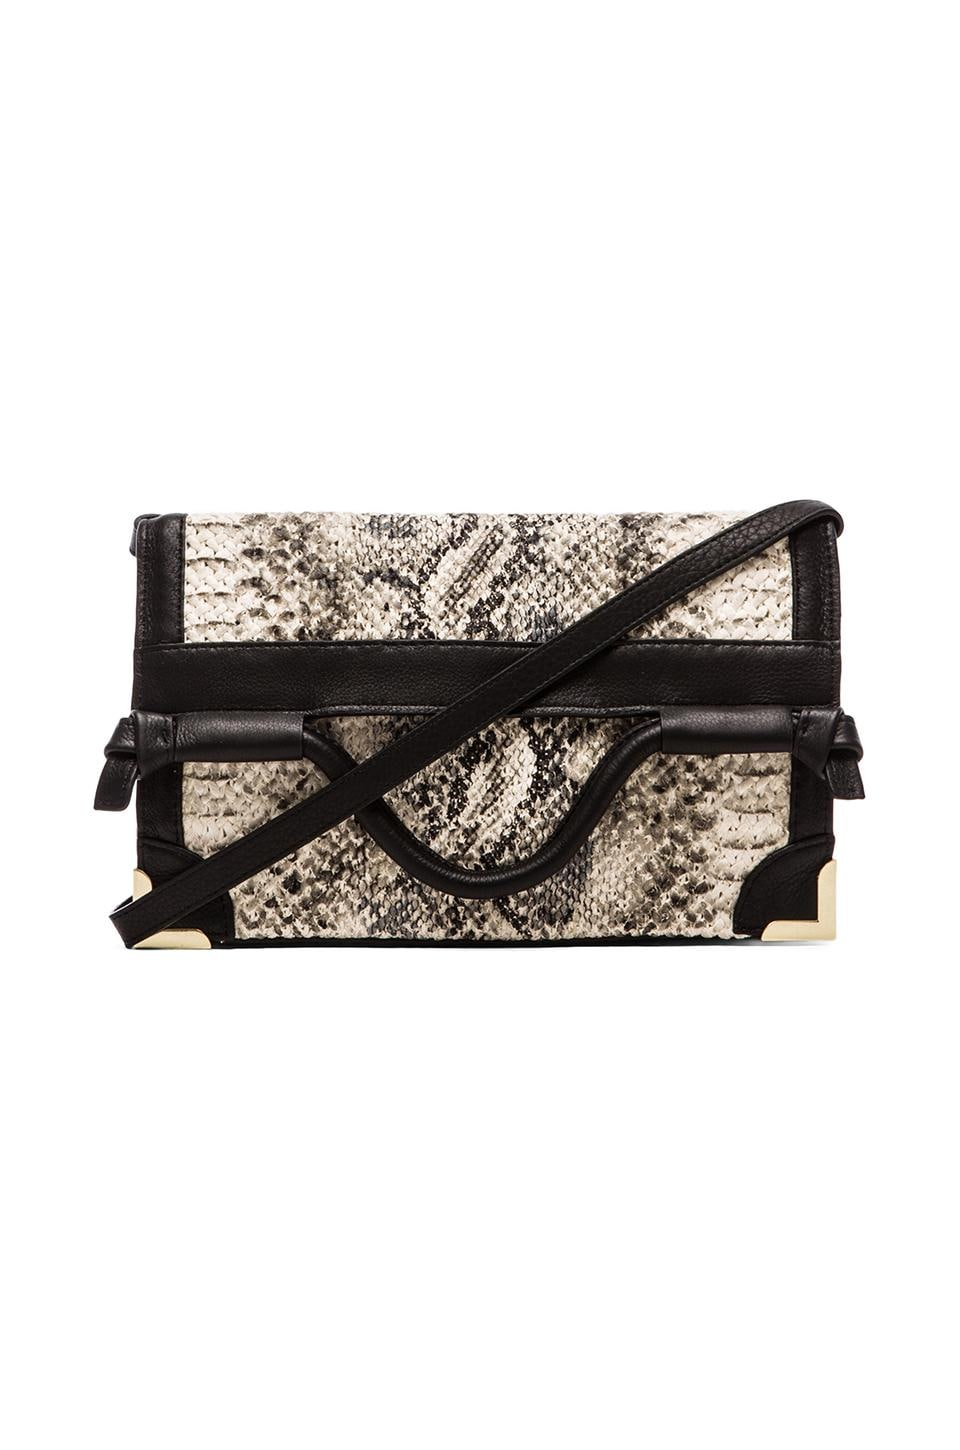 Foley + Corinna Framed Flap Crossbody in Woven Snake